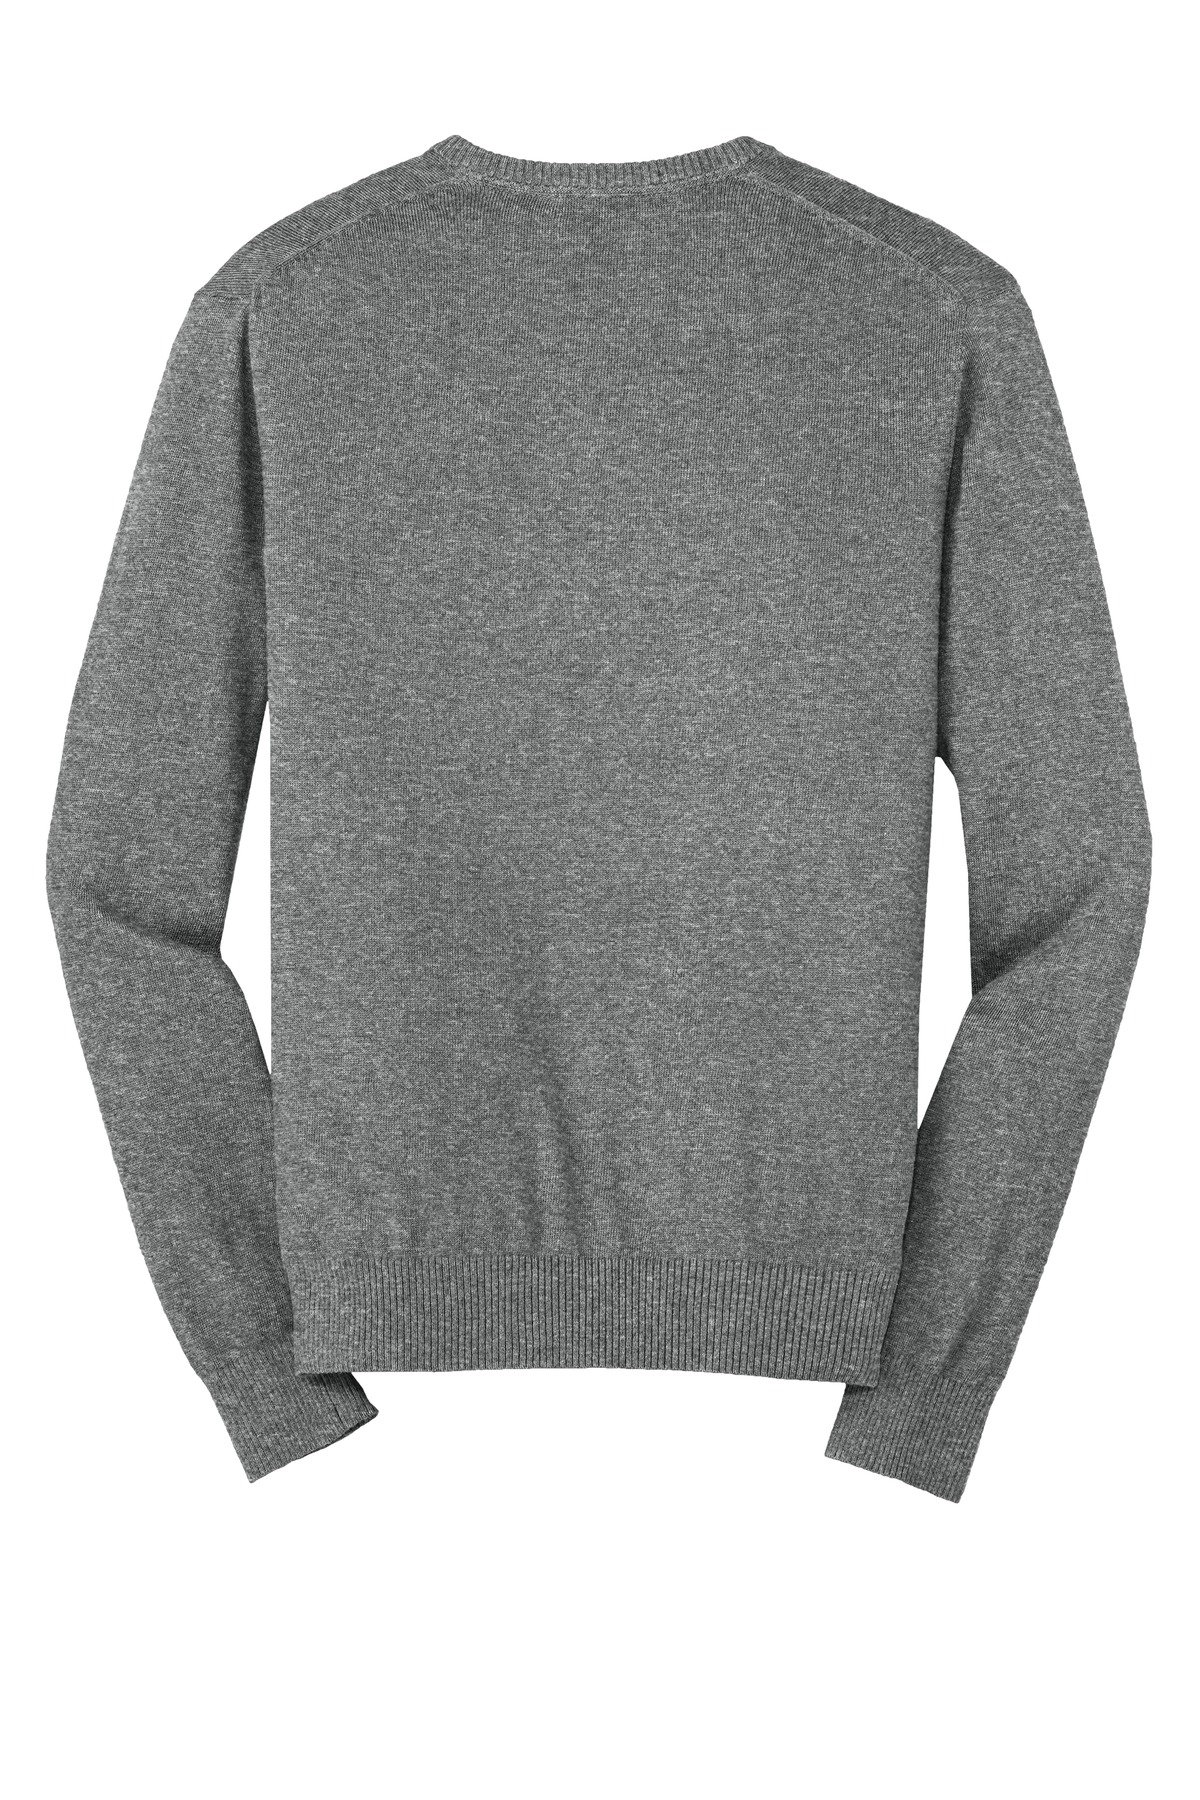 Mens V-Neck Sweater - RCG1340